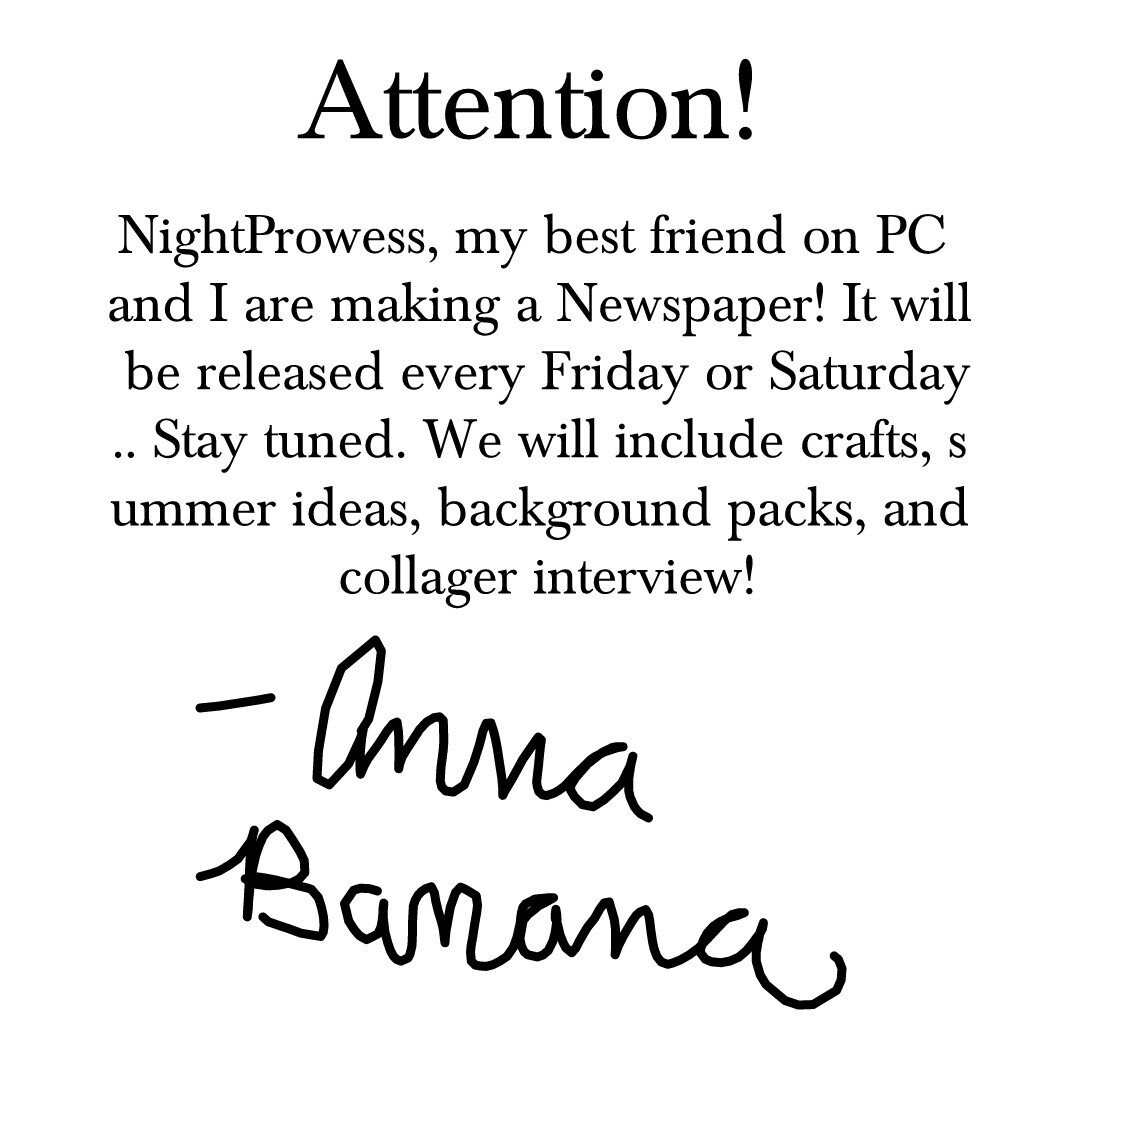 NightProwess, my best friend on PC and I are making a Newspaper! It will be released every Friday or Saturday.. Stay tuned. We will include crafts, summer ideas, background packs, and collager interview!